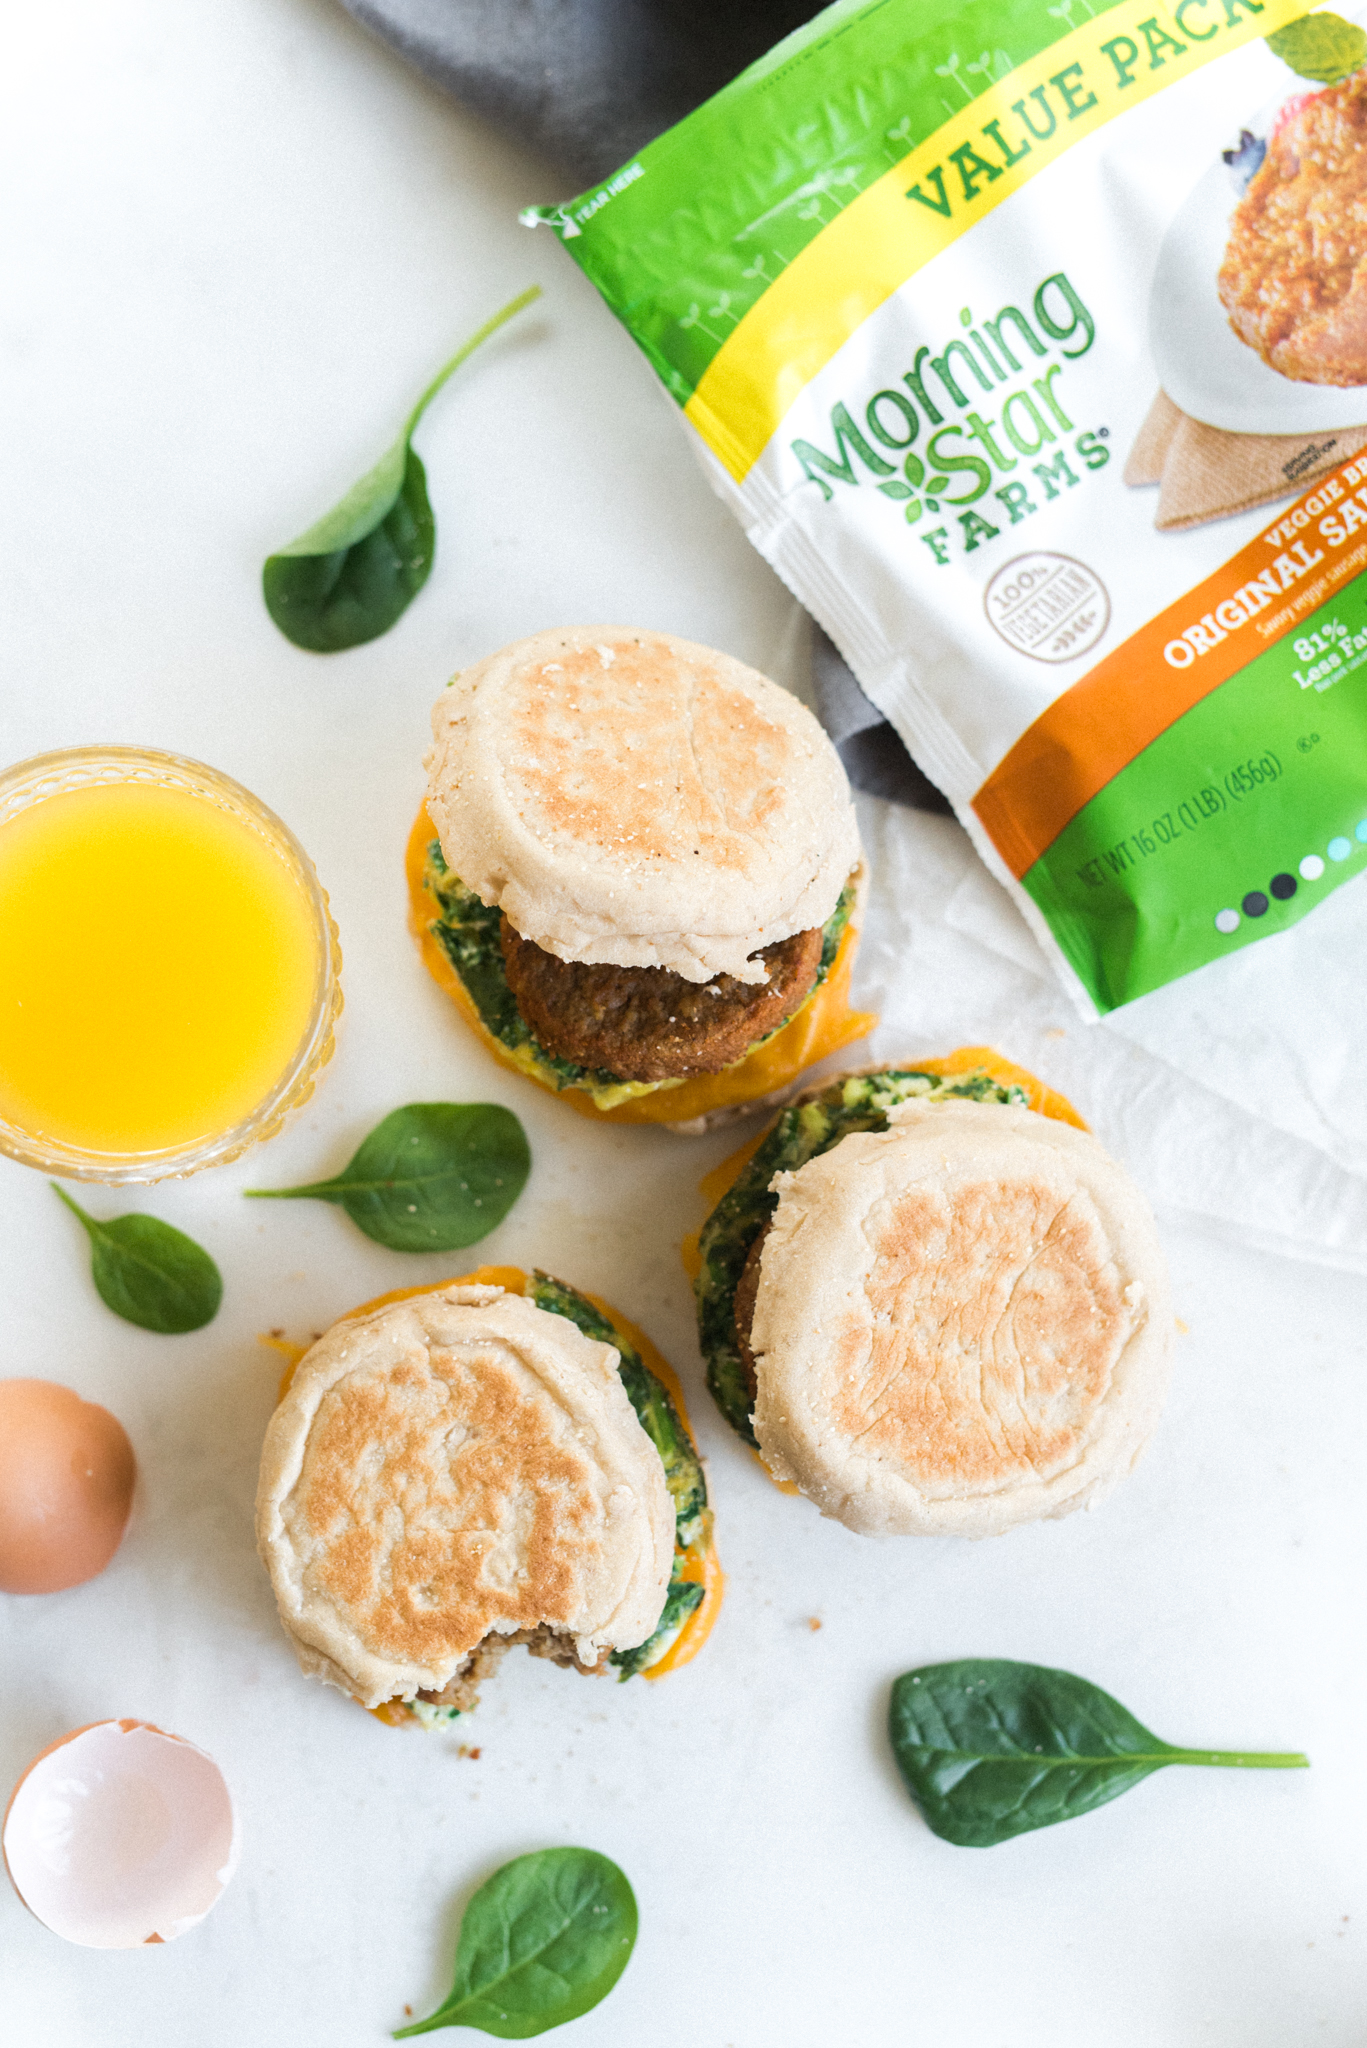 Meal Prep Vegetarian Breakfast Sandwiches- make a batch on Sunday and eat healthier all week!